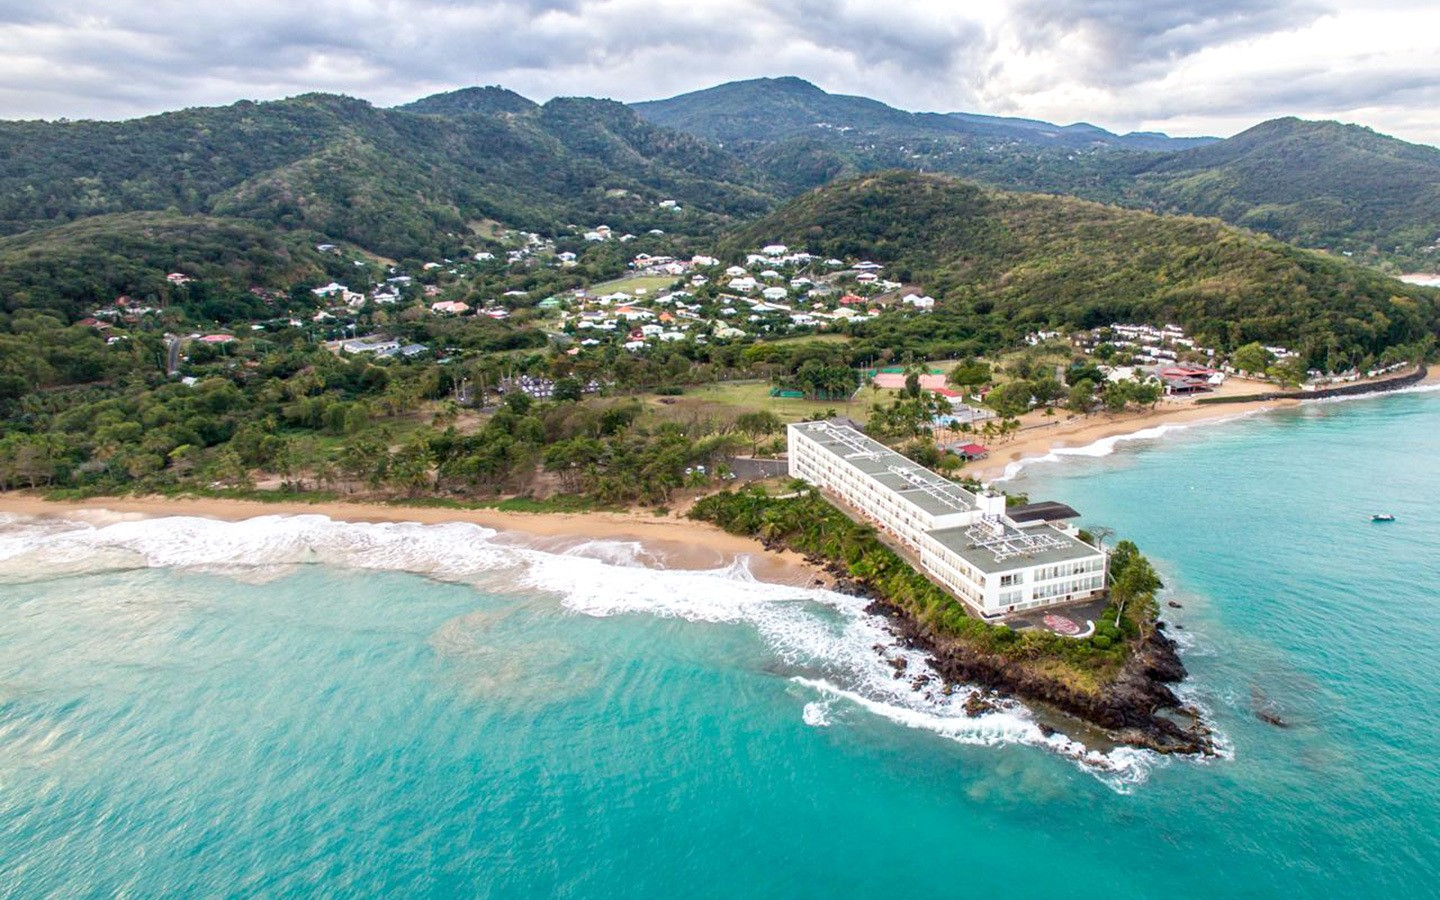 Langley Fort Royal hotel in Guadeloupe